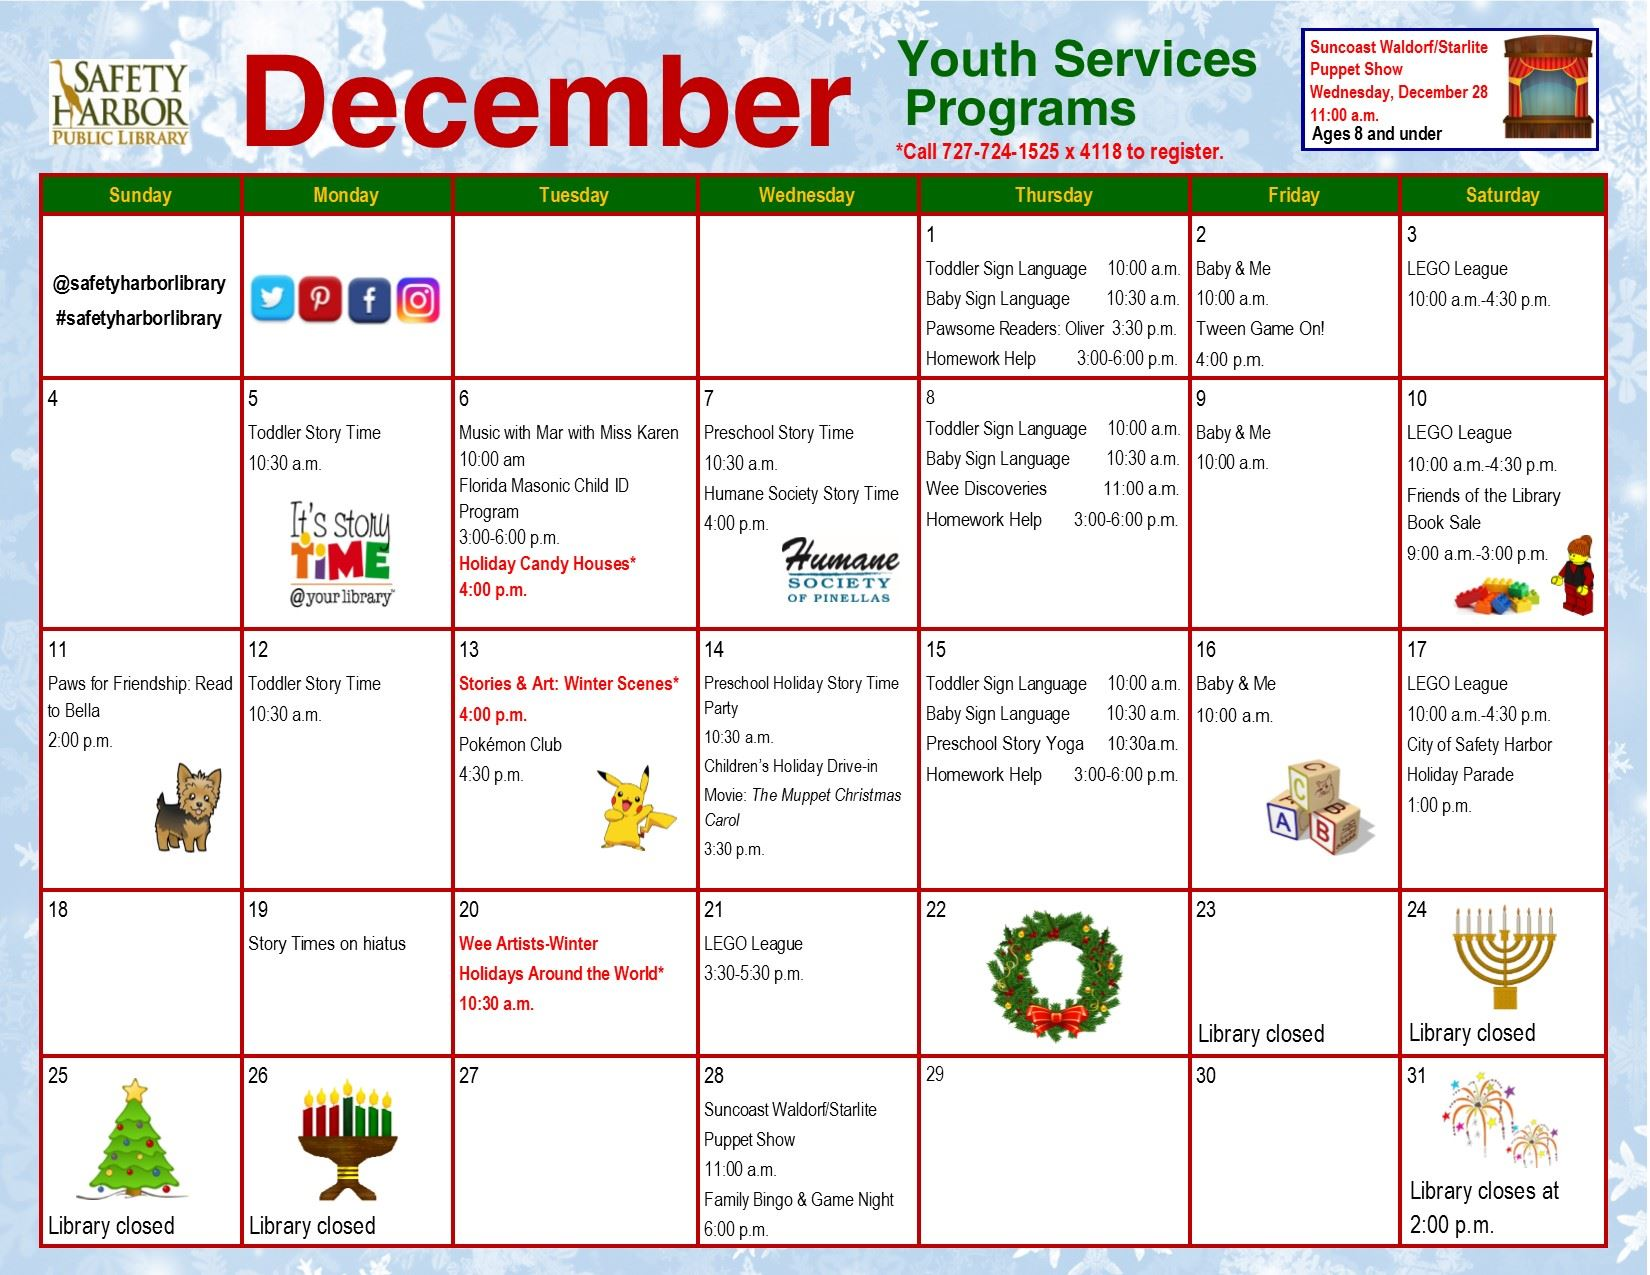 December 2016 Youth Services Calender, Page 2